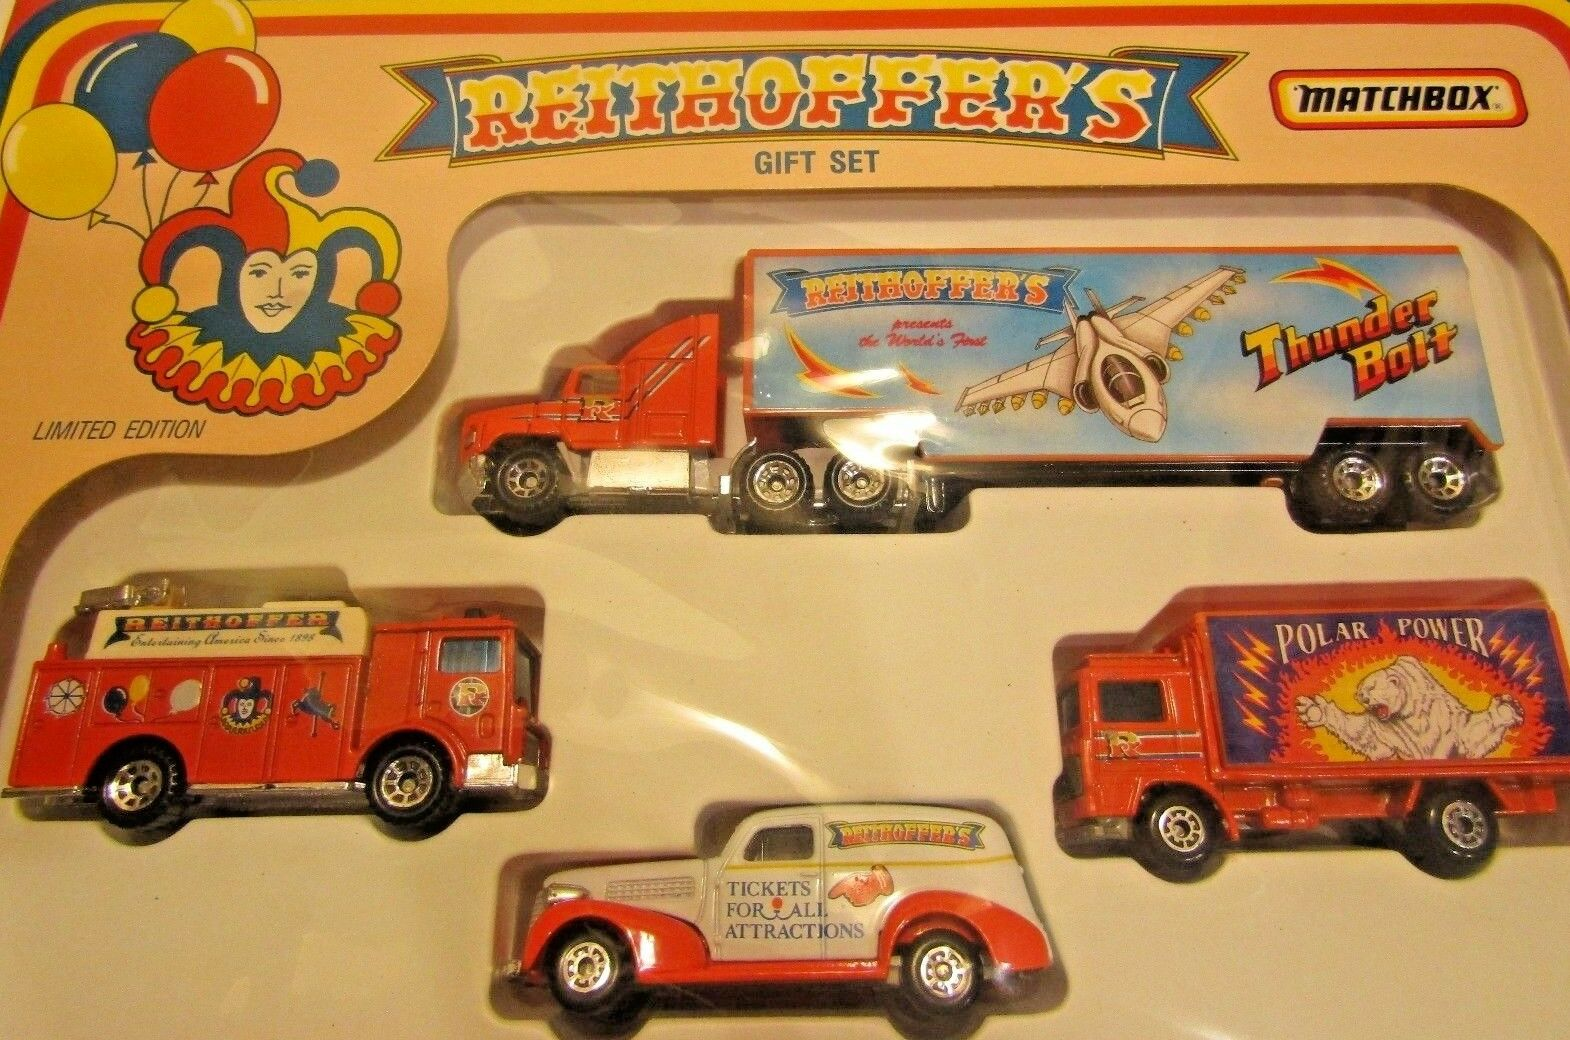 Reithoffer's Gift Set Matchbox Circus Boxed Limited Edition White White White pink Shows 065540